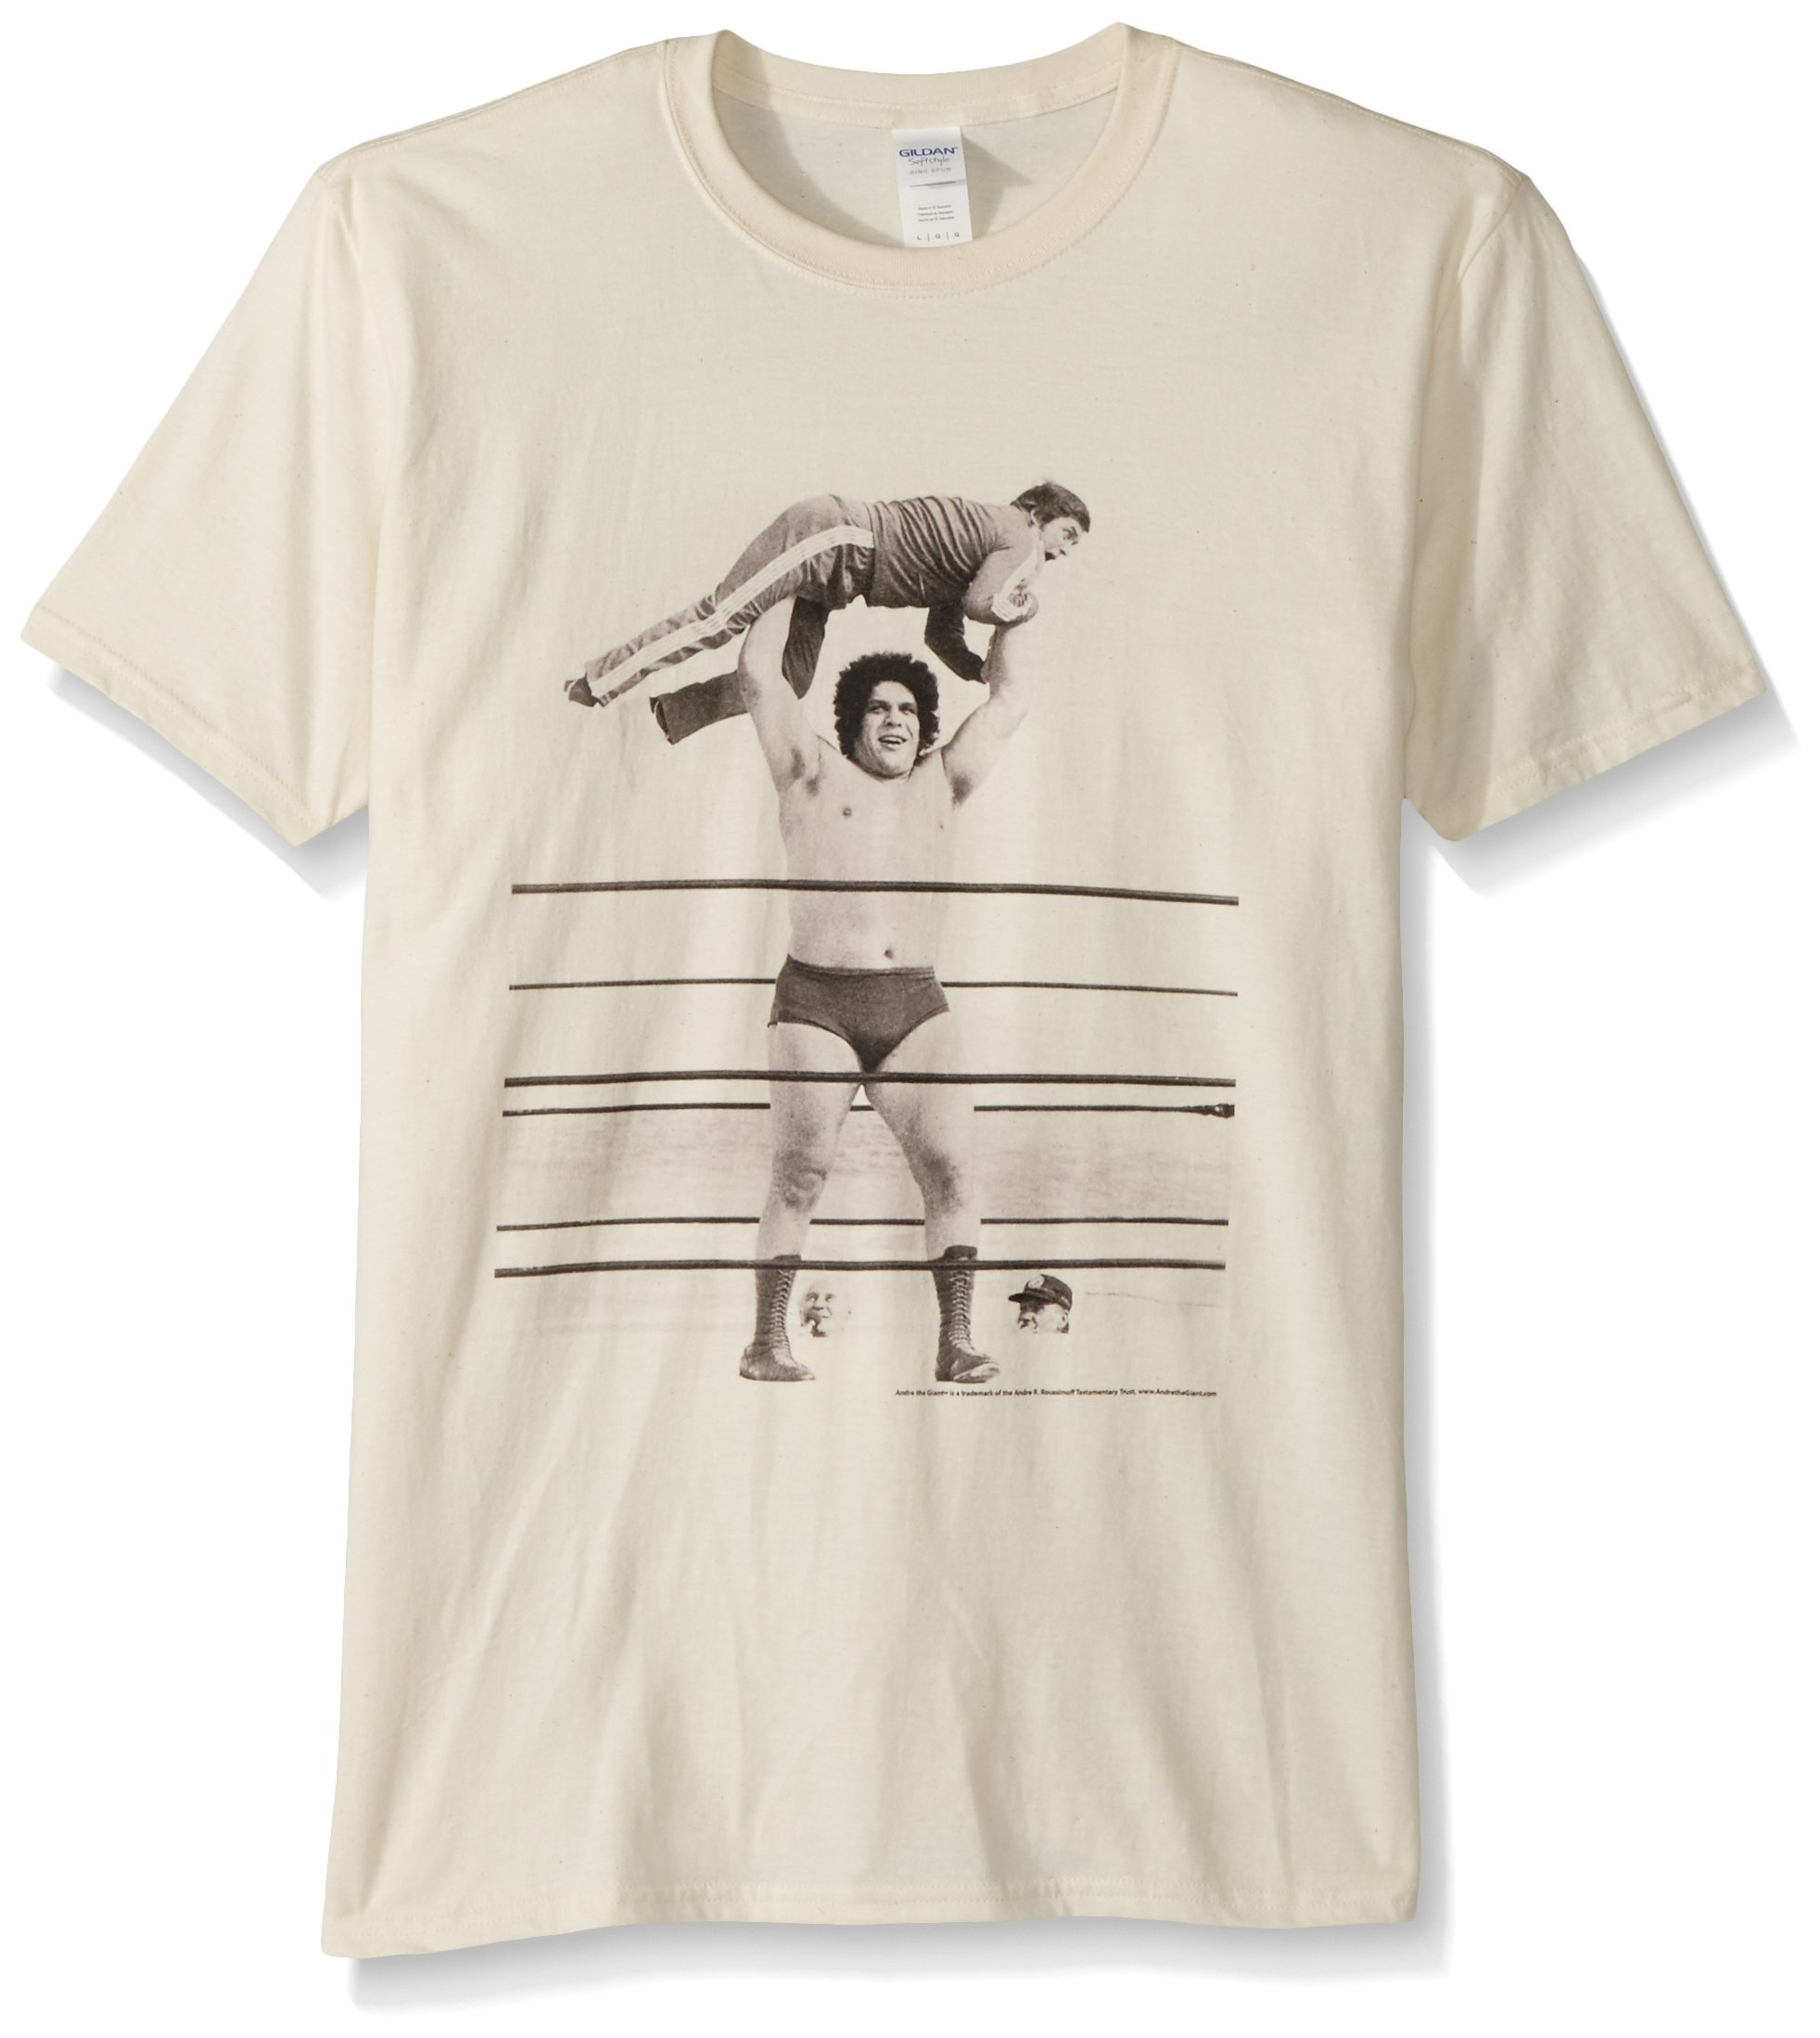 American Classics Unisex-Adults Andre The Giant Short Sleeve T-Shirt, Natural, Large